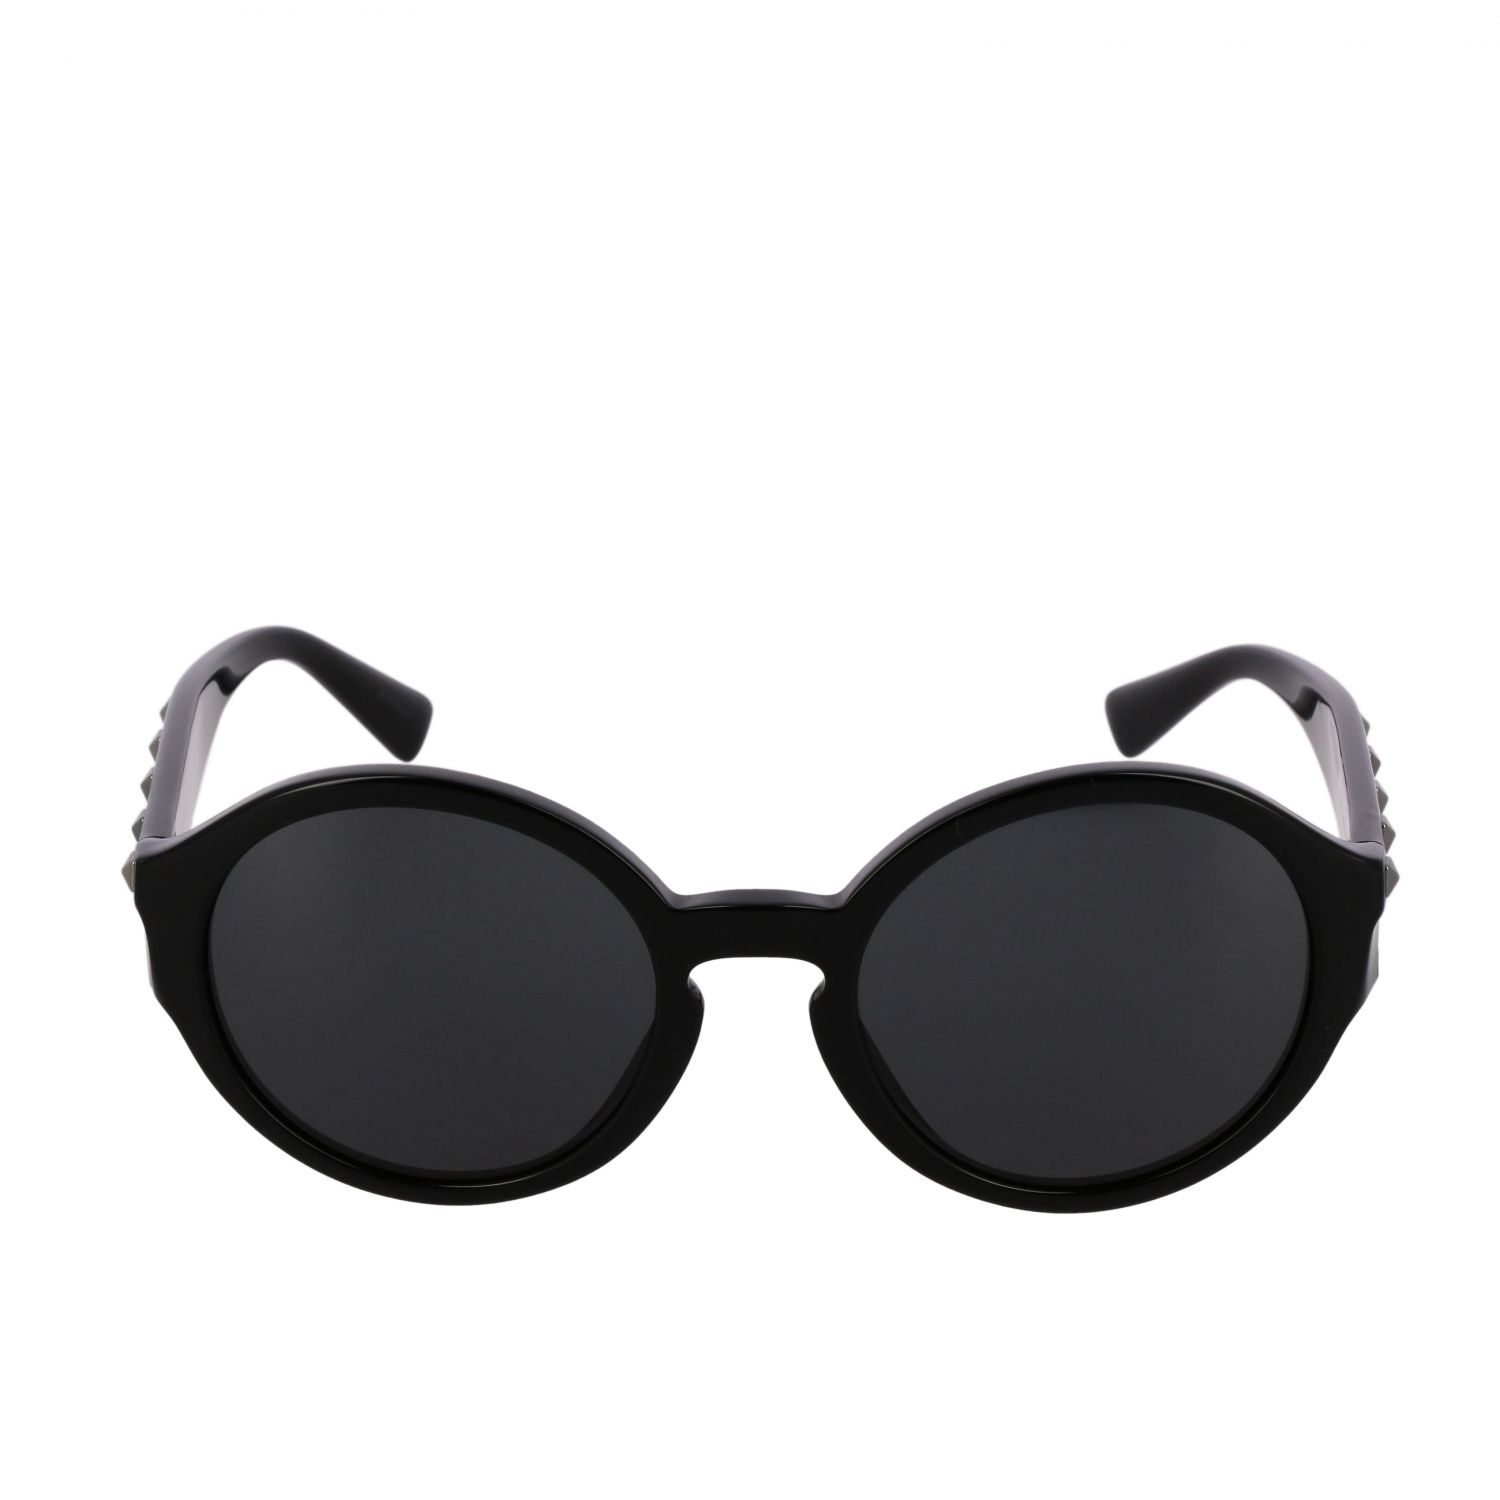 Glasses Valentino: Glasses women Valentino black 2